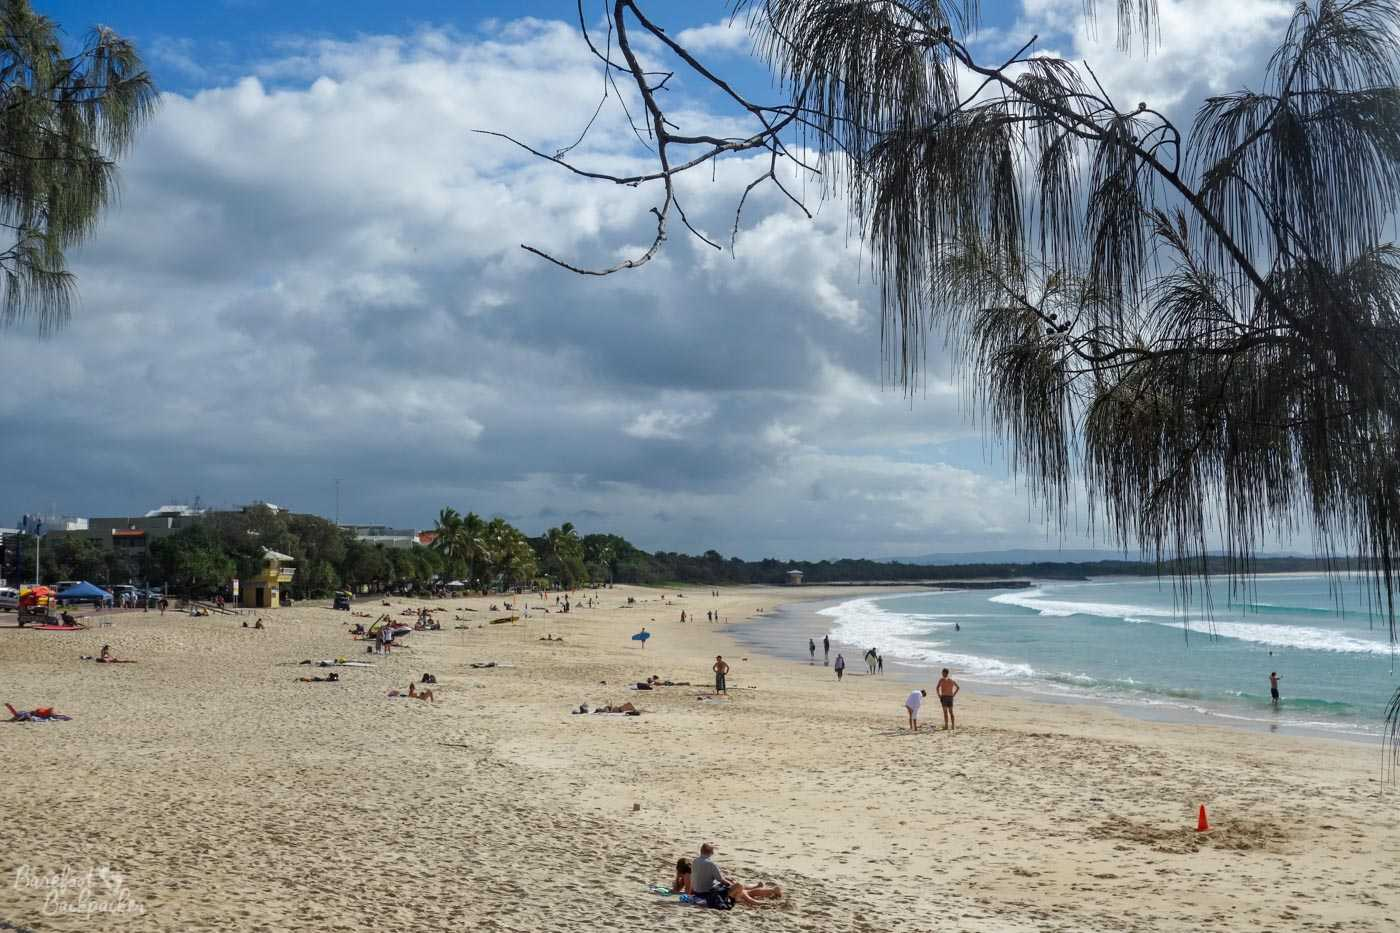 The beach at Noosa. It's pretty wide, yellow, sea on the right, trees hiding the prom on the left, lots of people on the sand, a couple holding surfboards.